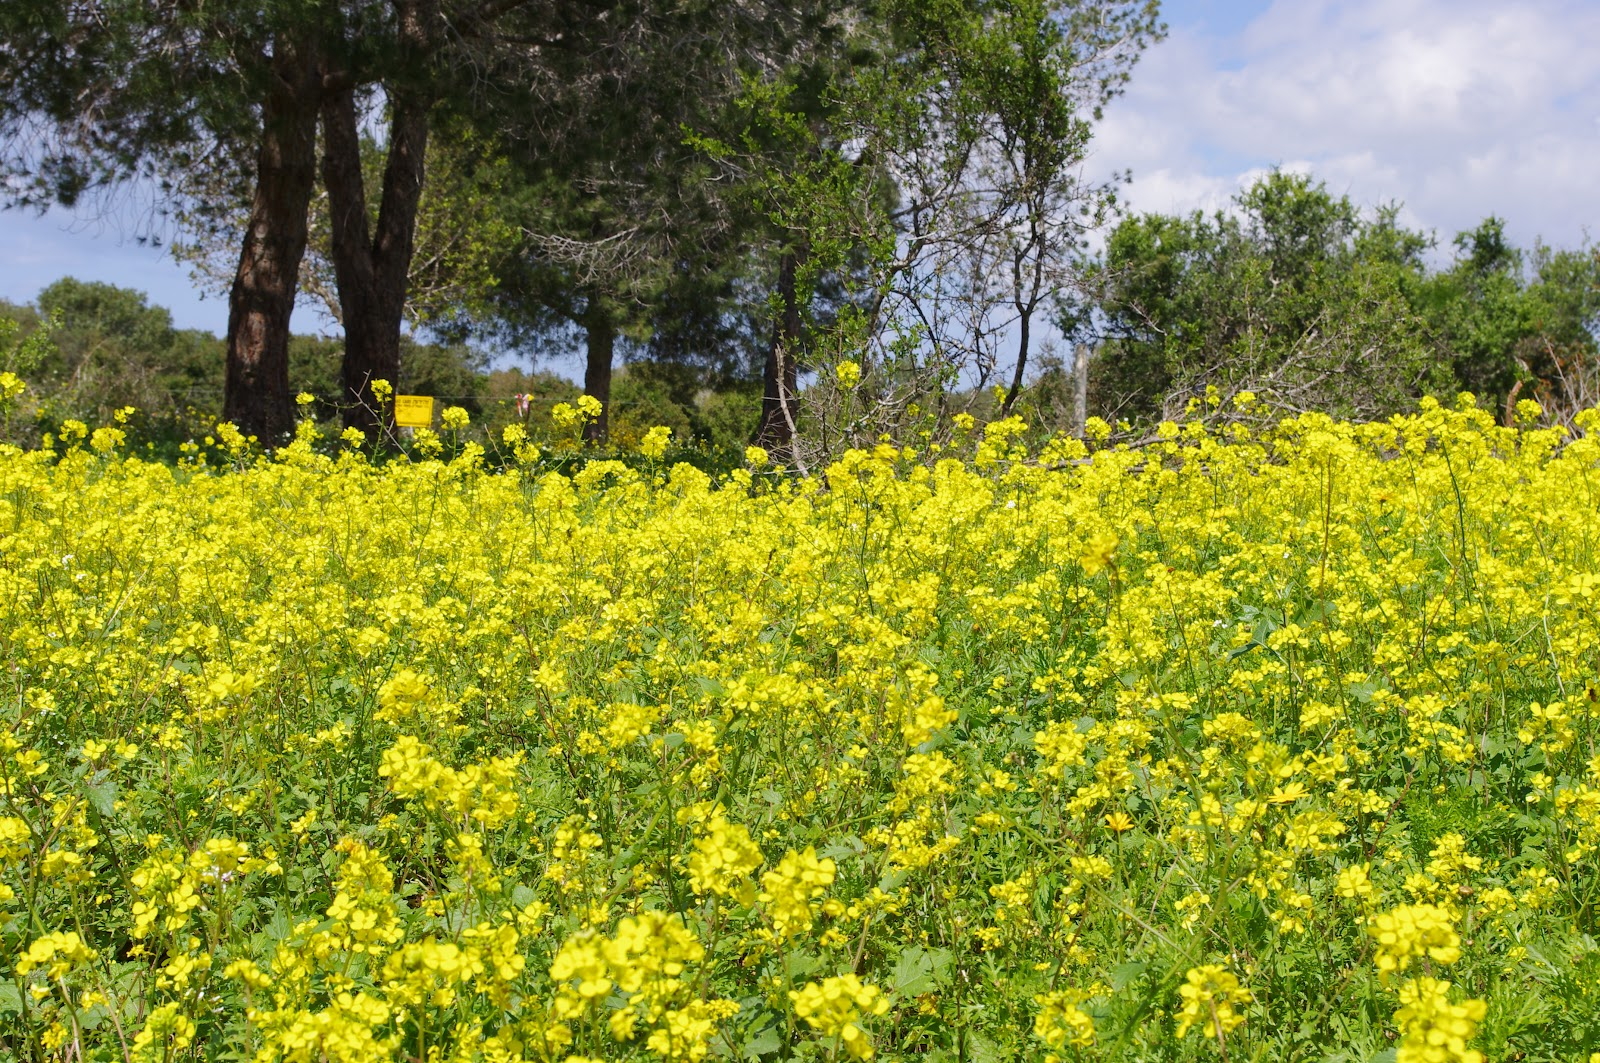 A Letter From Israel The Wild Mustard Flowers Of Israel